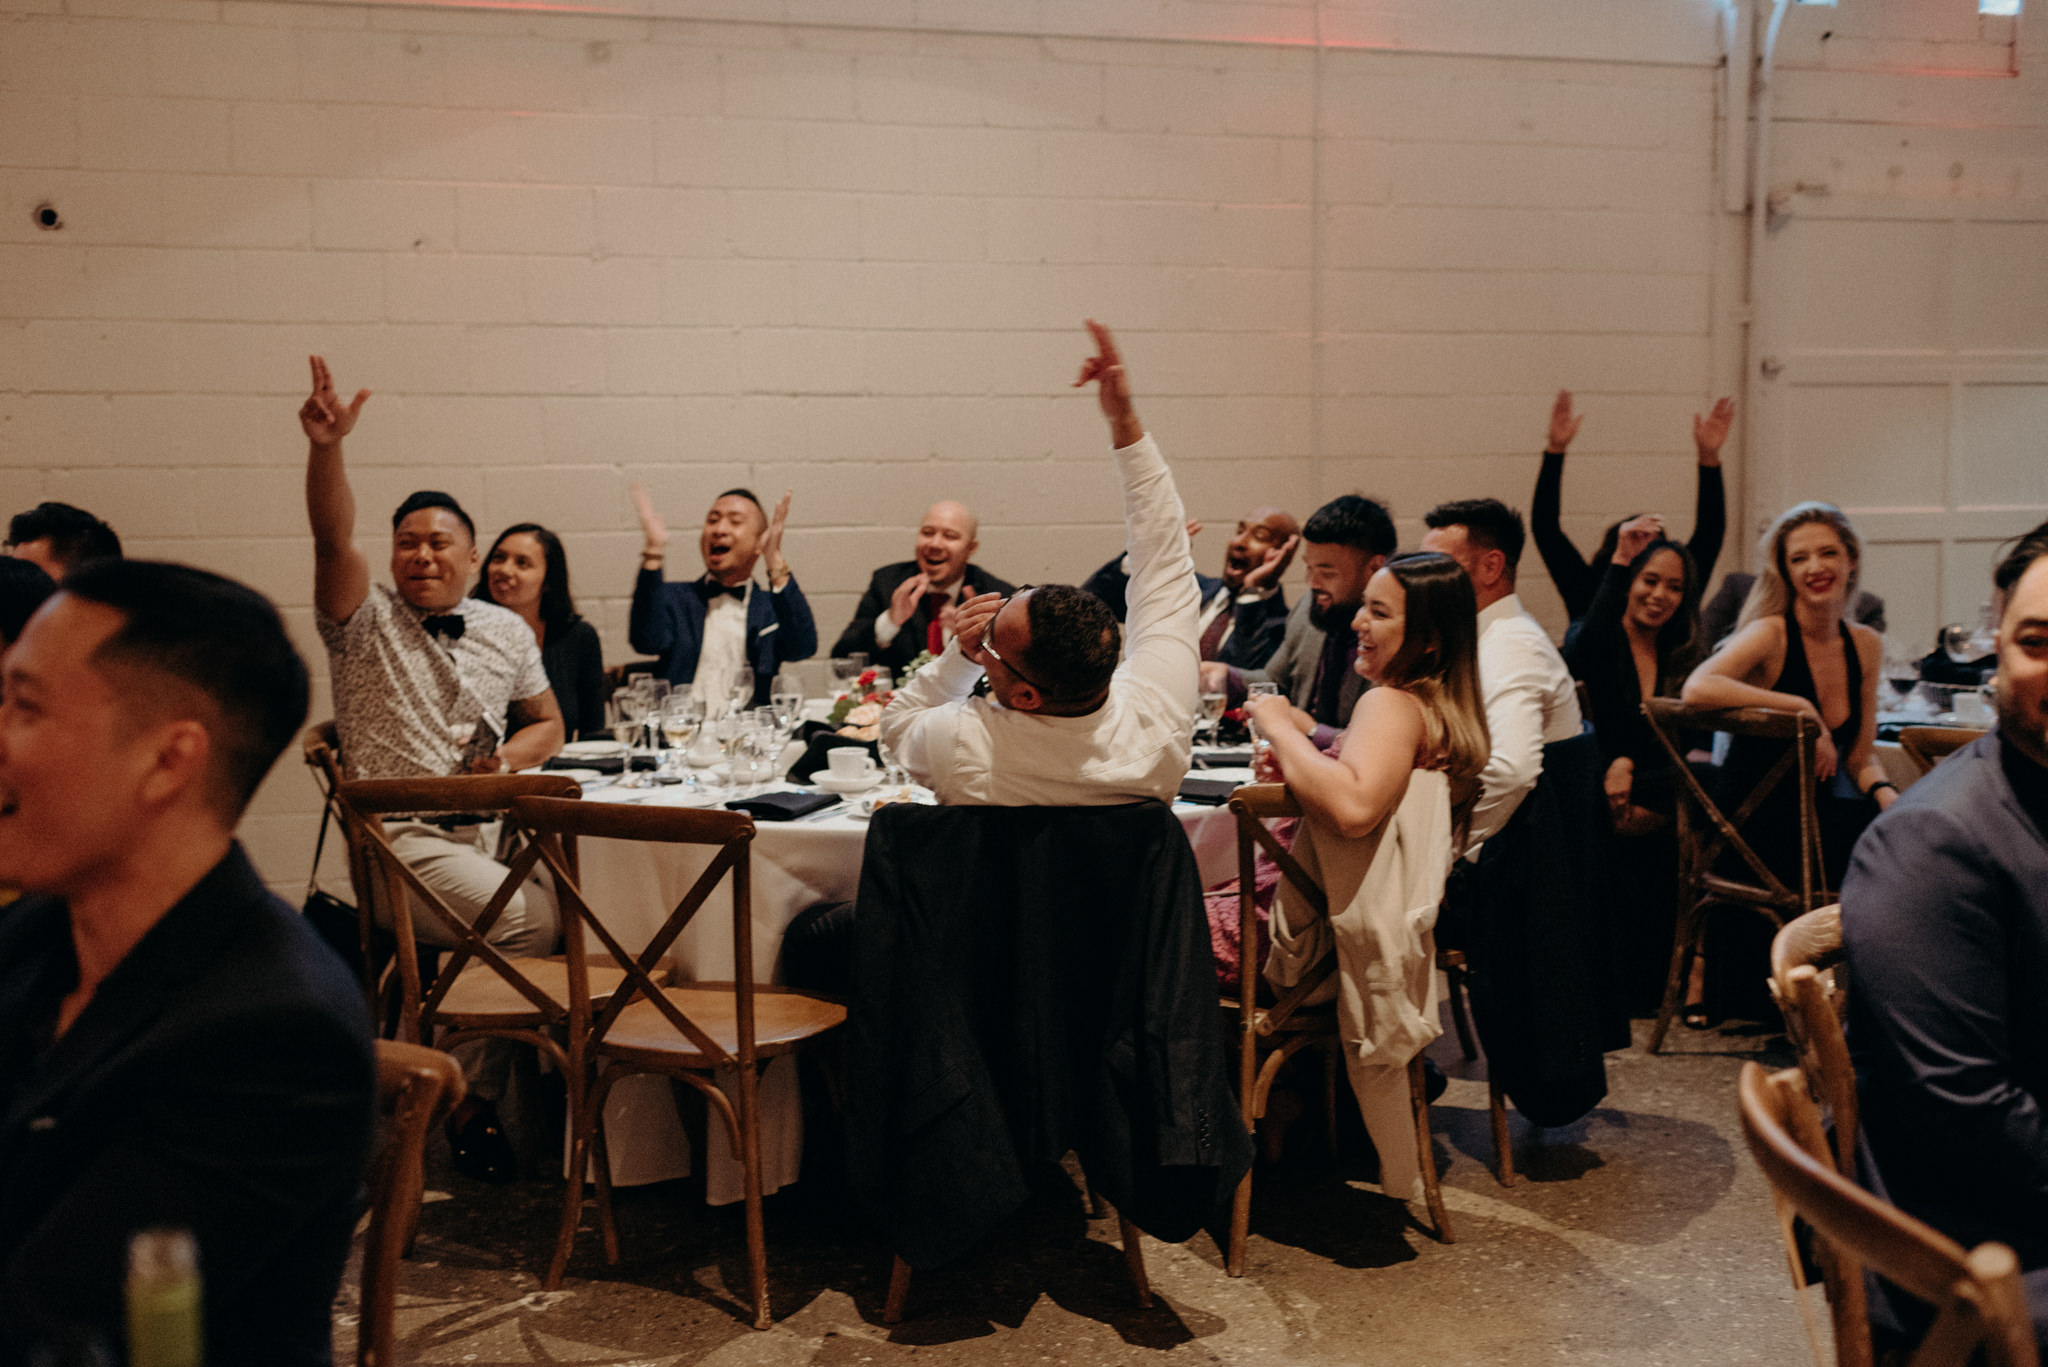 Guests cheering at wedding reception